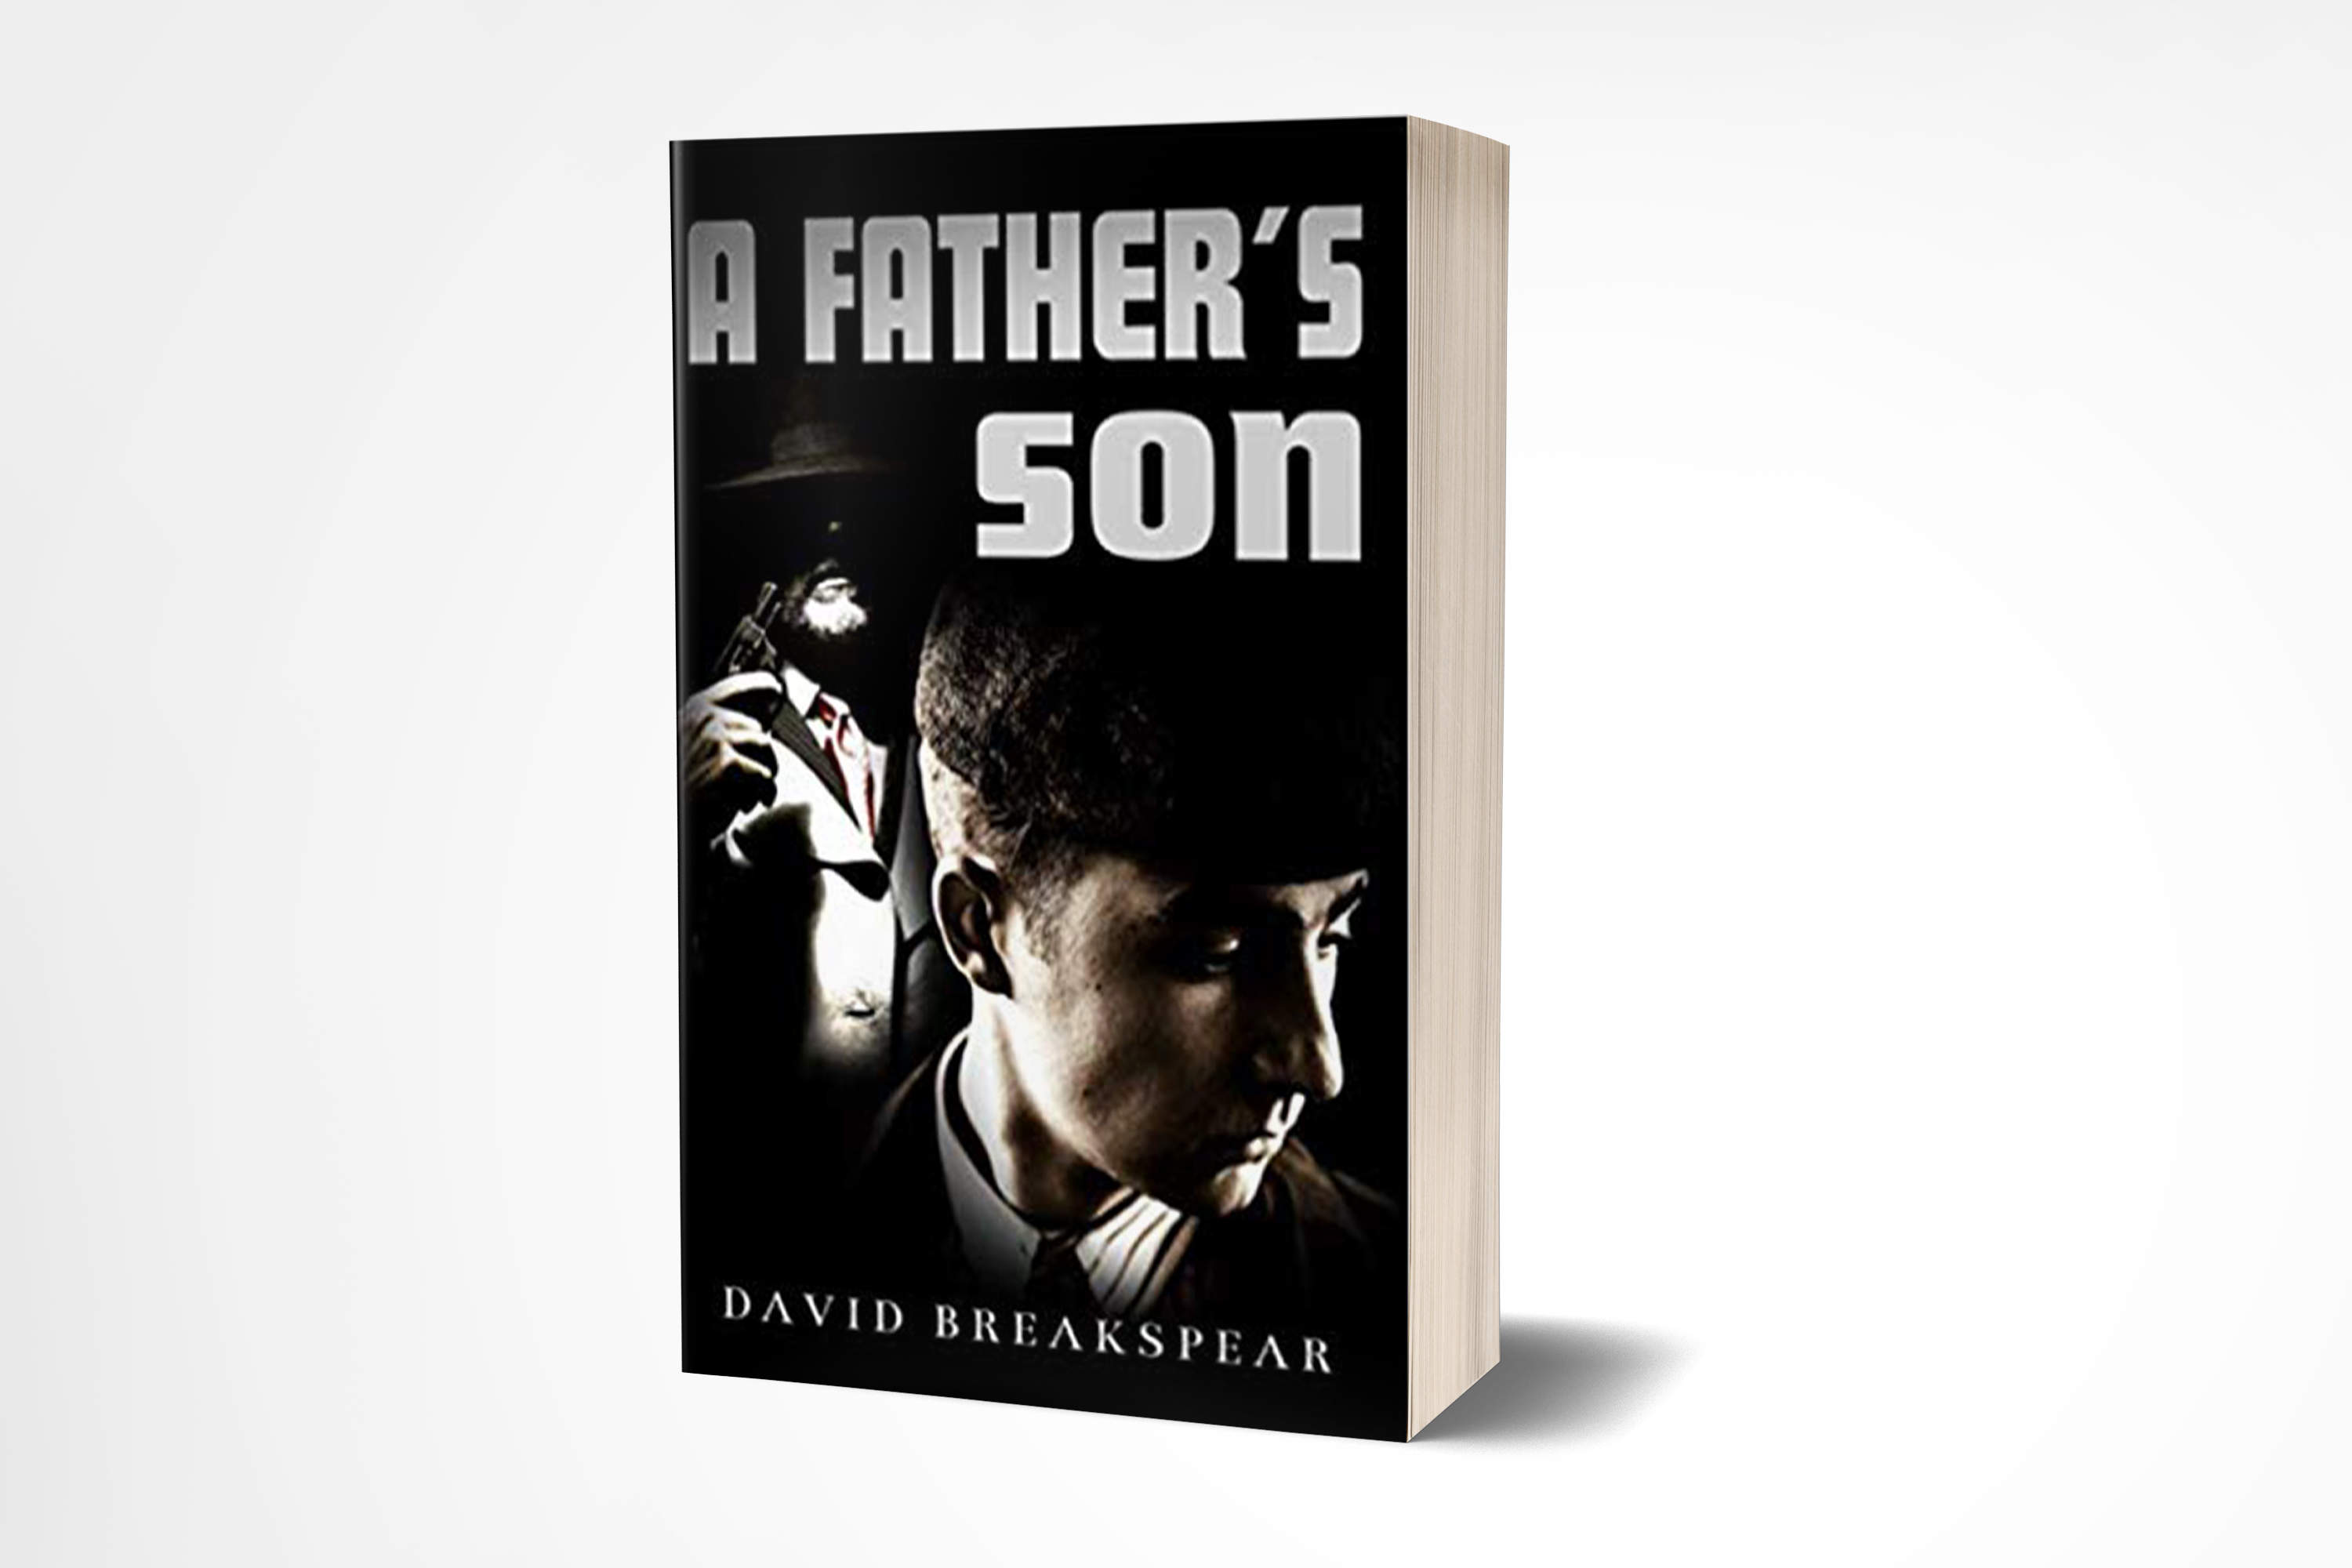 A Father's Son by David Breakspear